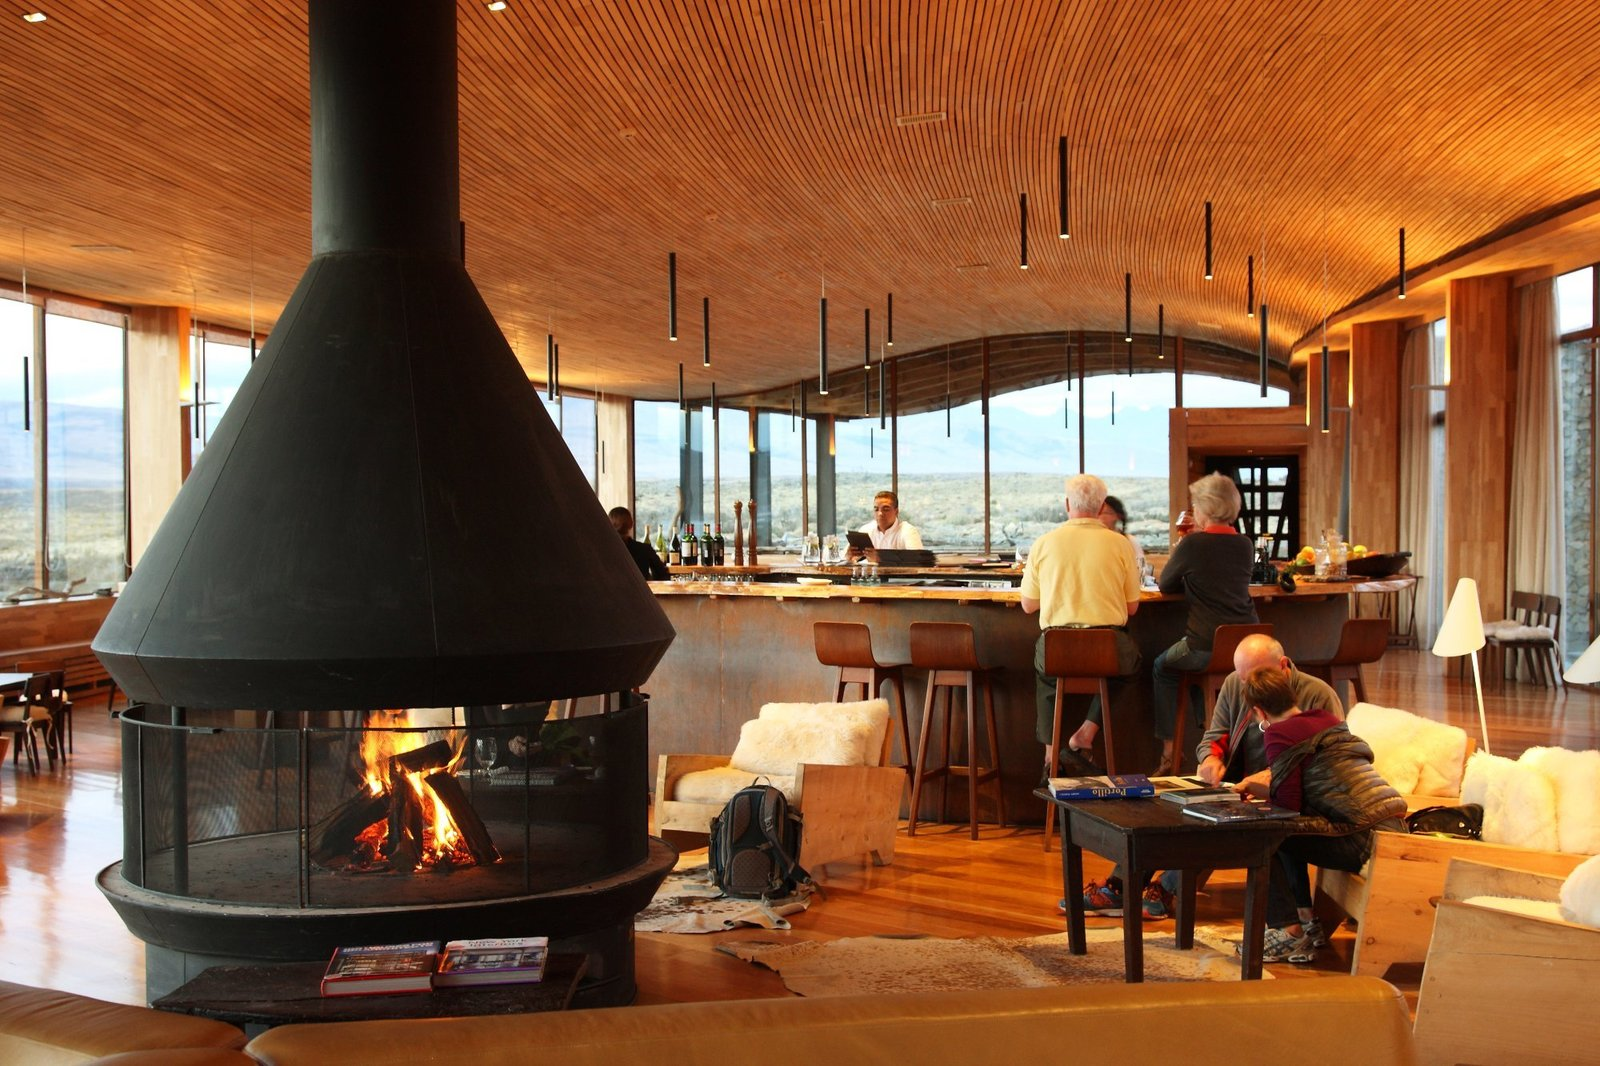 Living Room, Bar, Wood Burning Fireplace, Chair, Stools, Floor Lighting, and Ceiling Lighting  Tierra Patagonia Hotel & Spa